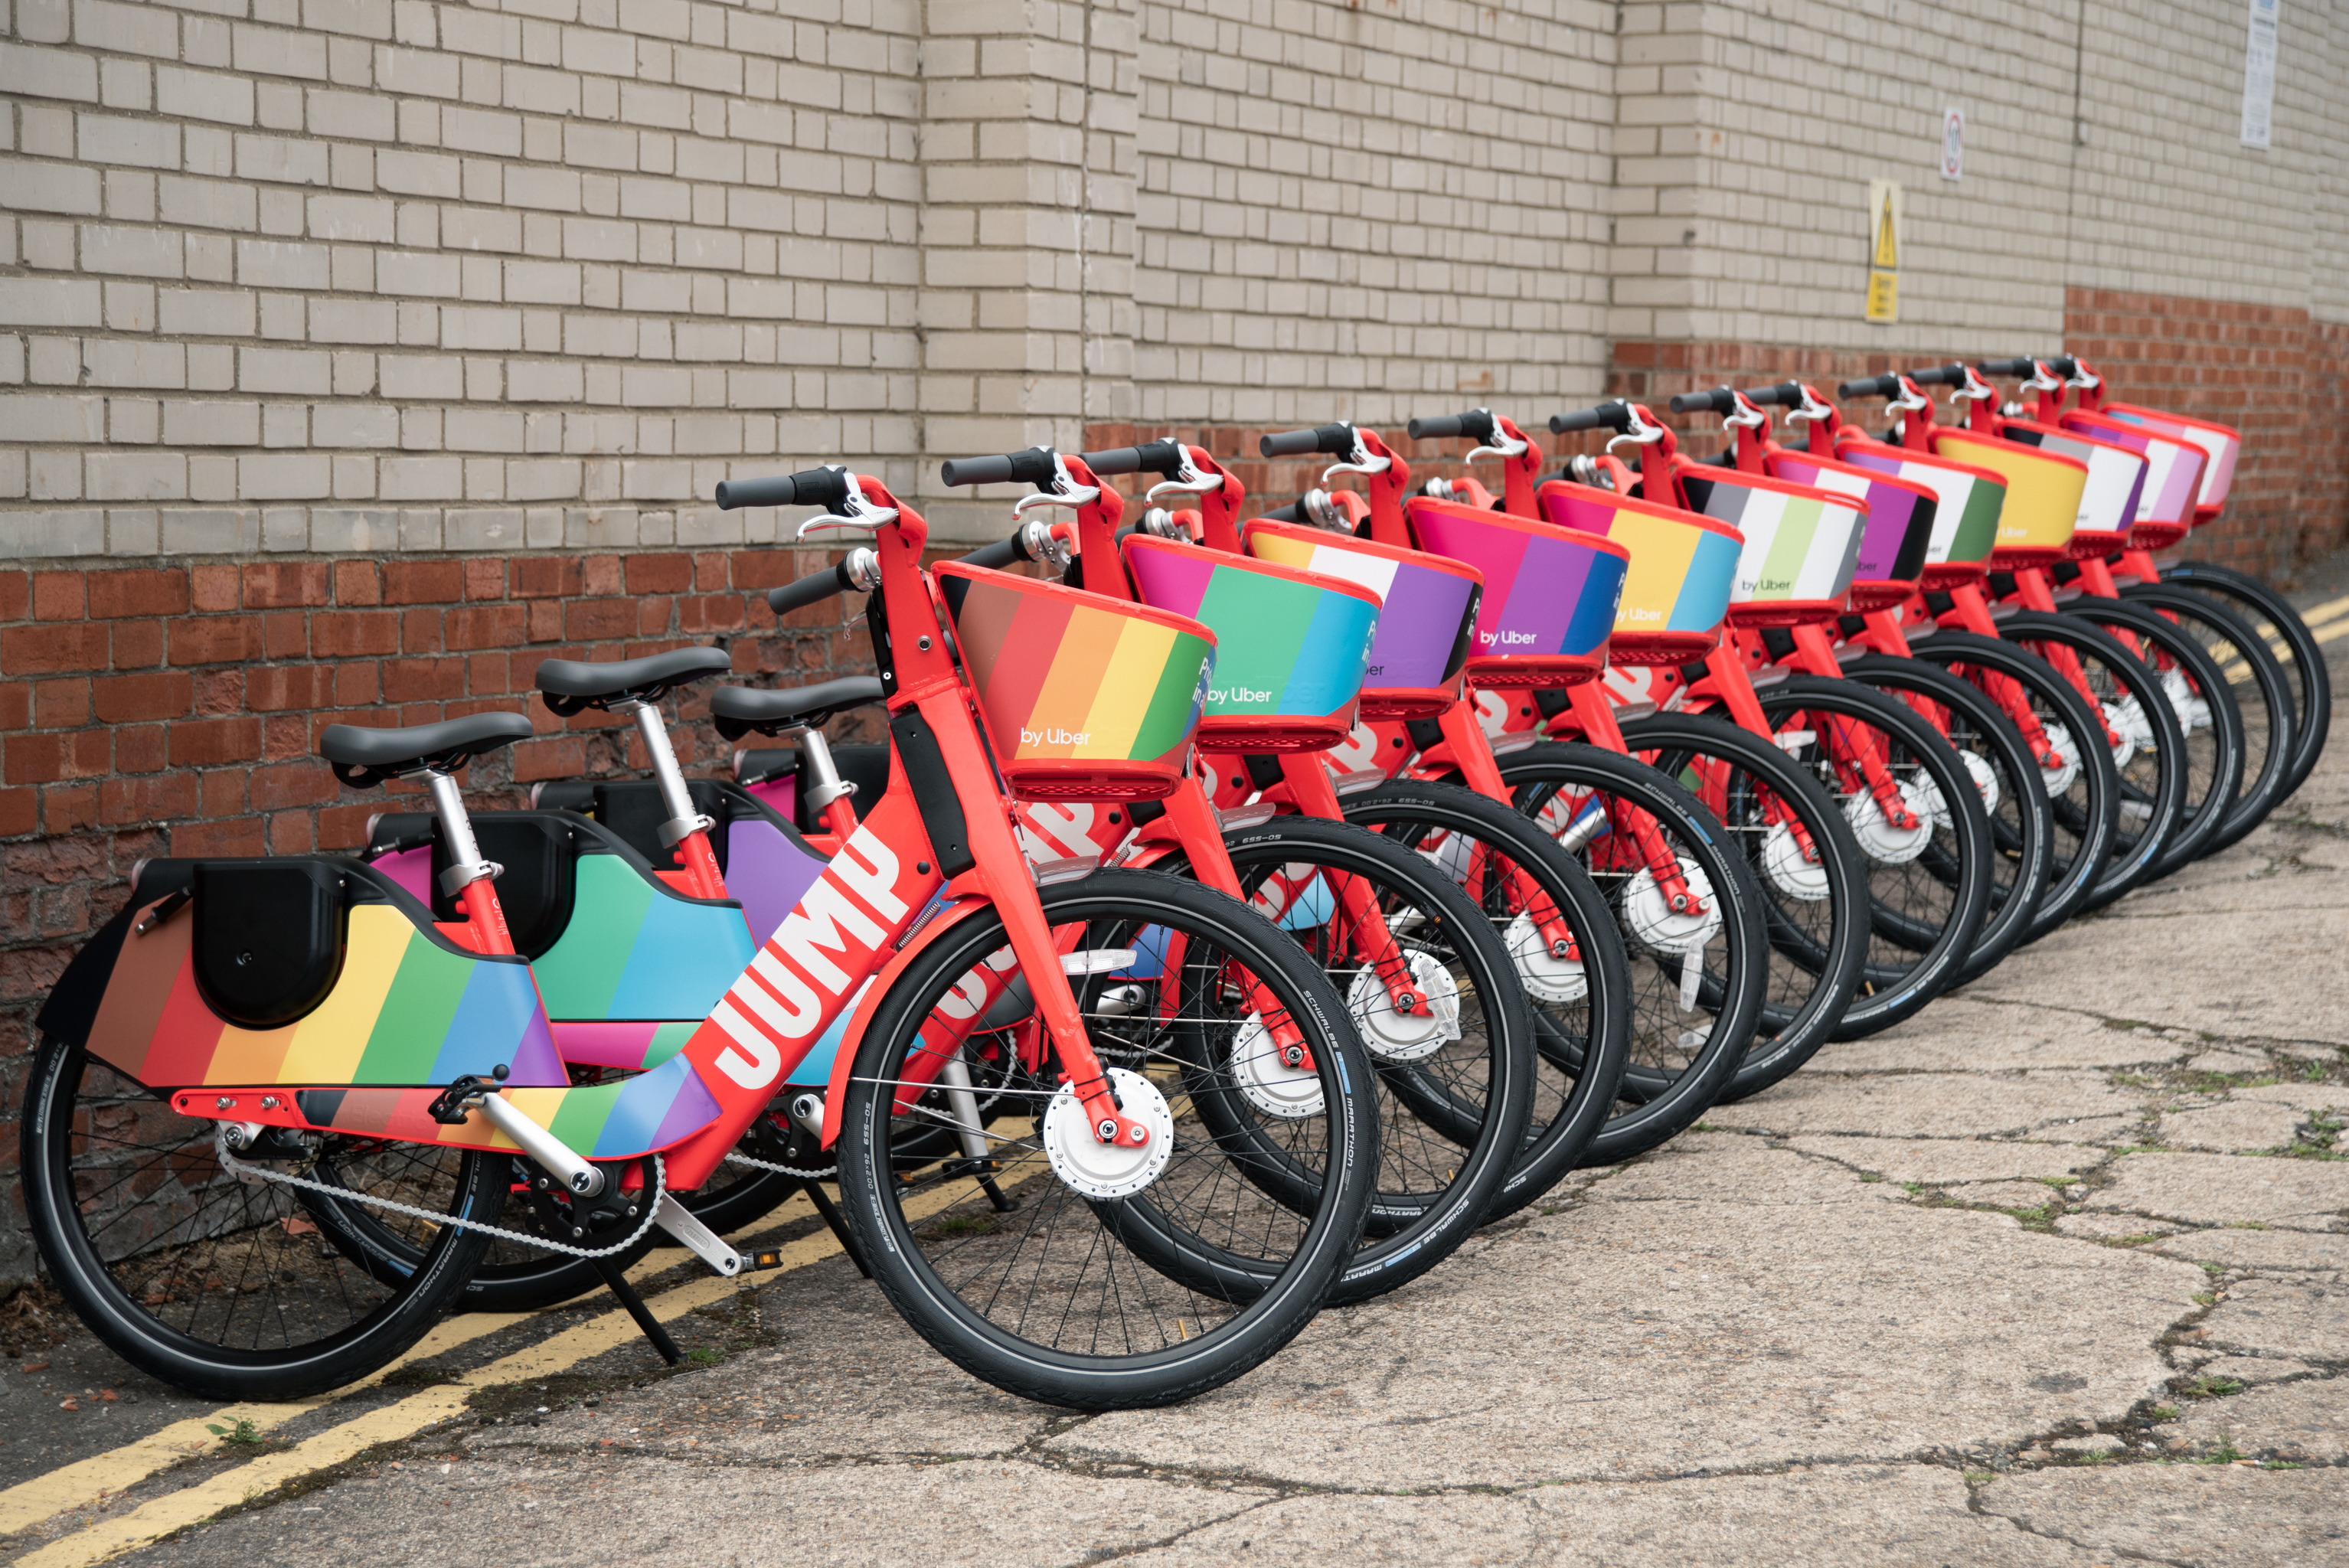 Uber's JUMP bikes decorated with LGBT flags to celebrate Pride